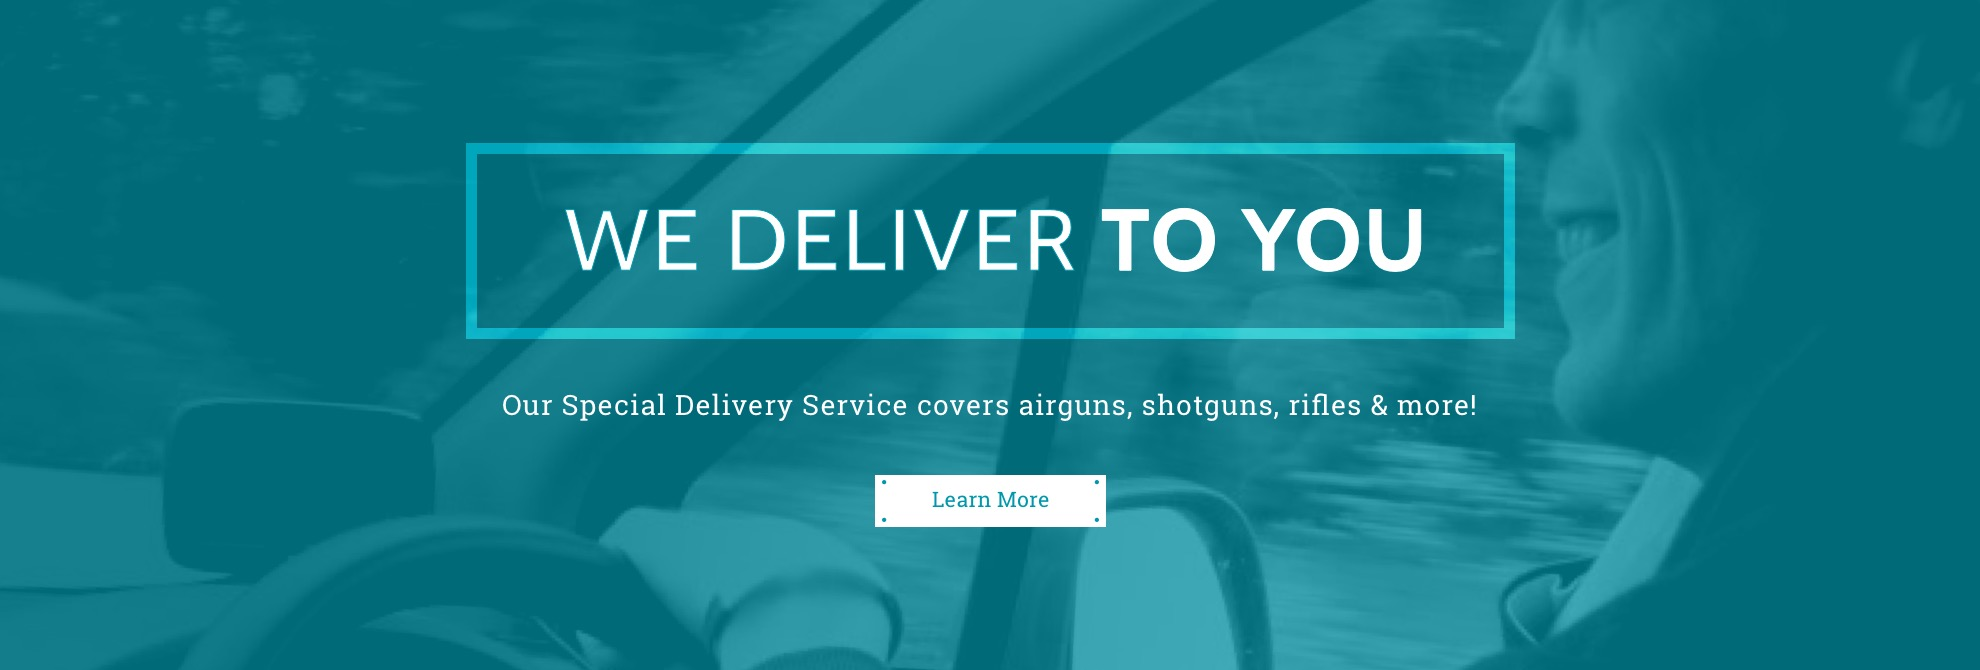 The Pellpax Delivery Service is one of the best in the UK for Air Rifles and Air Pistols